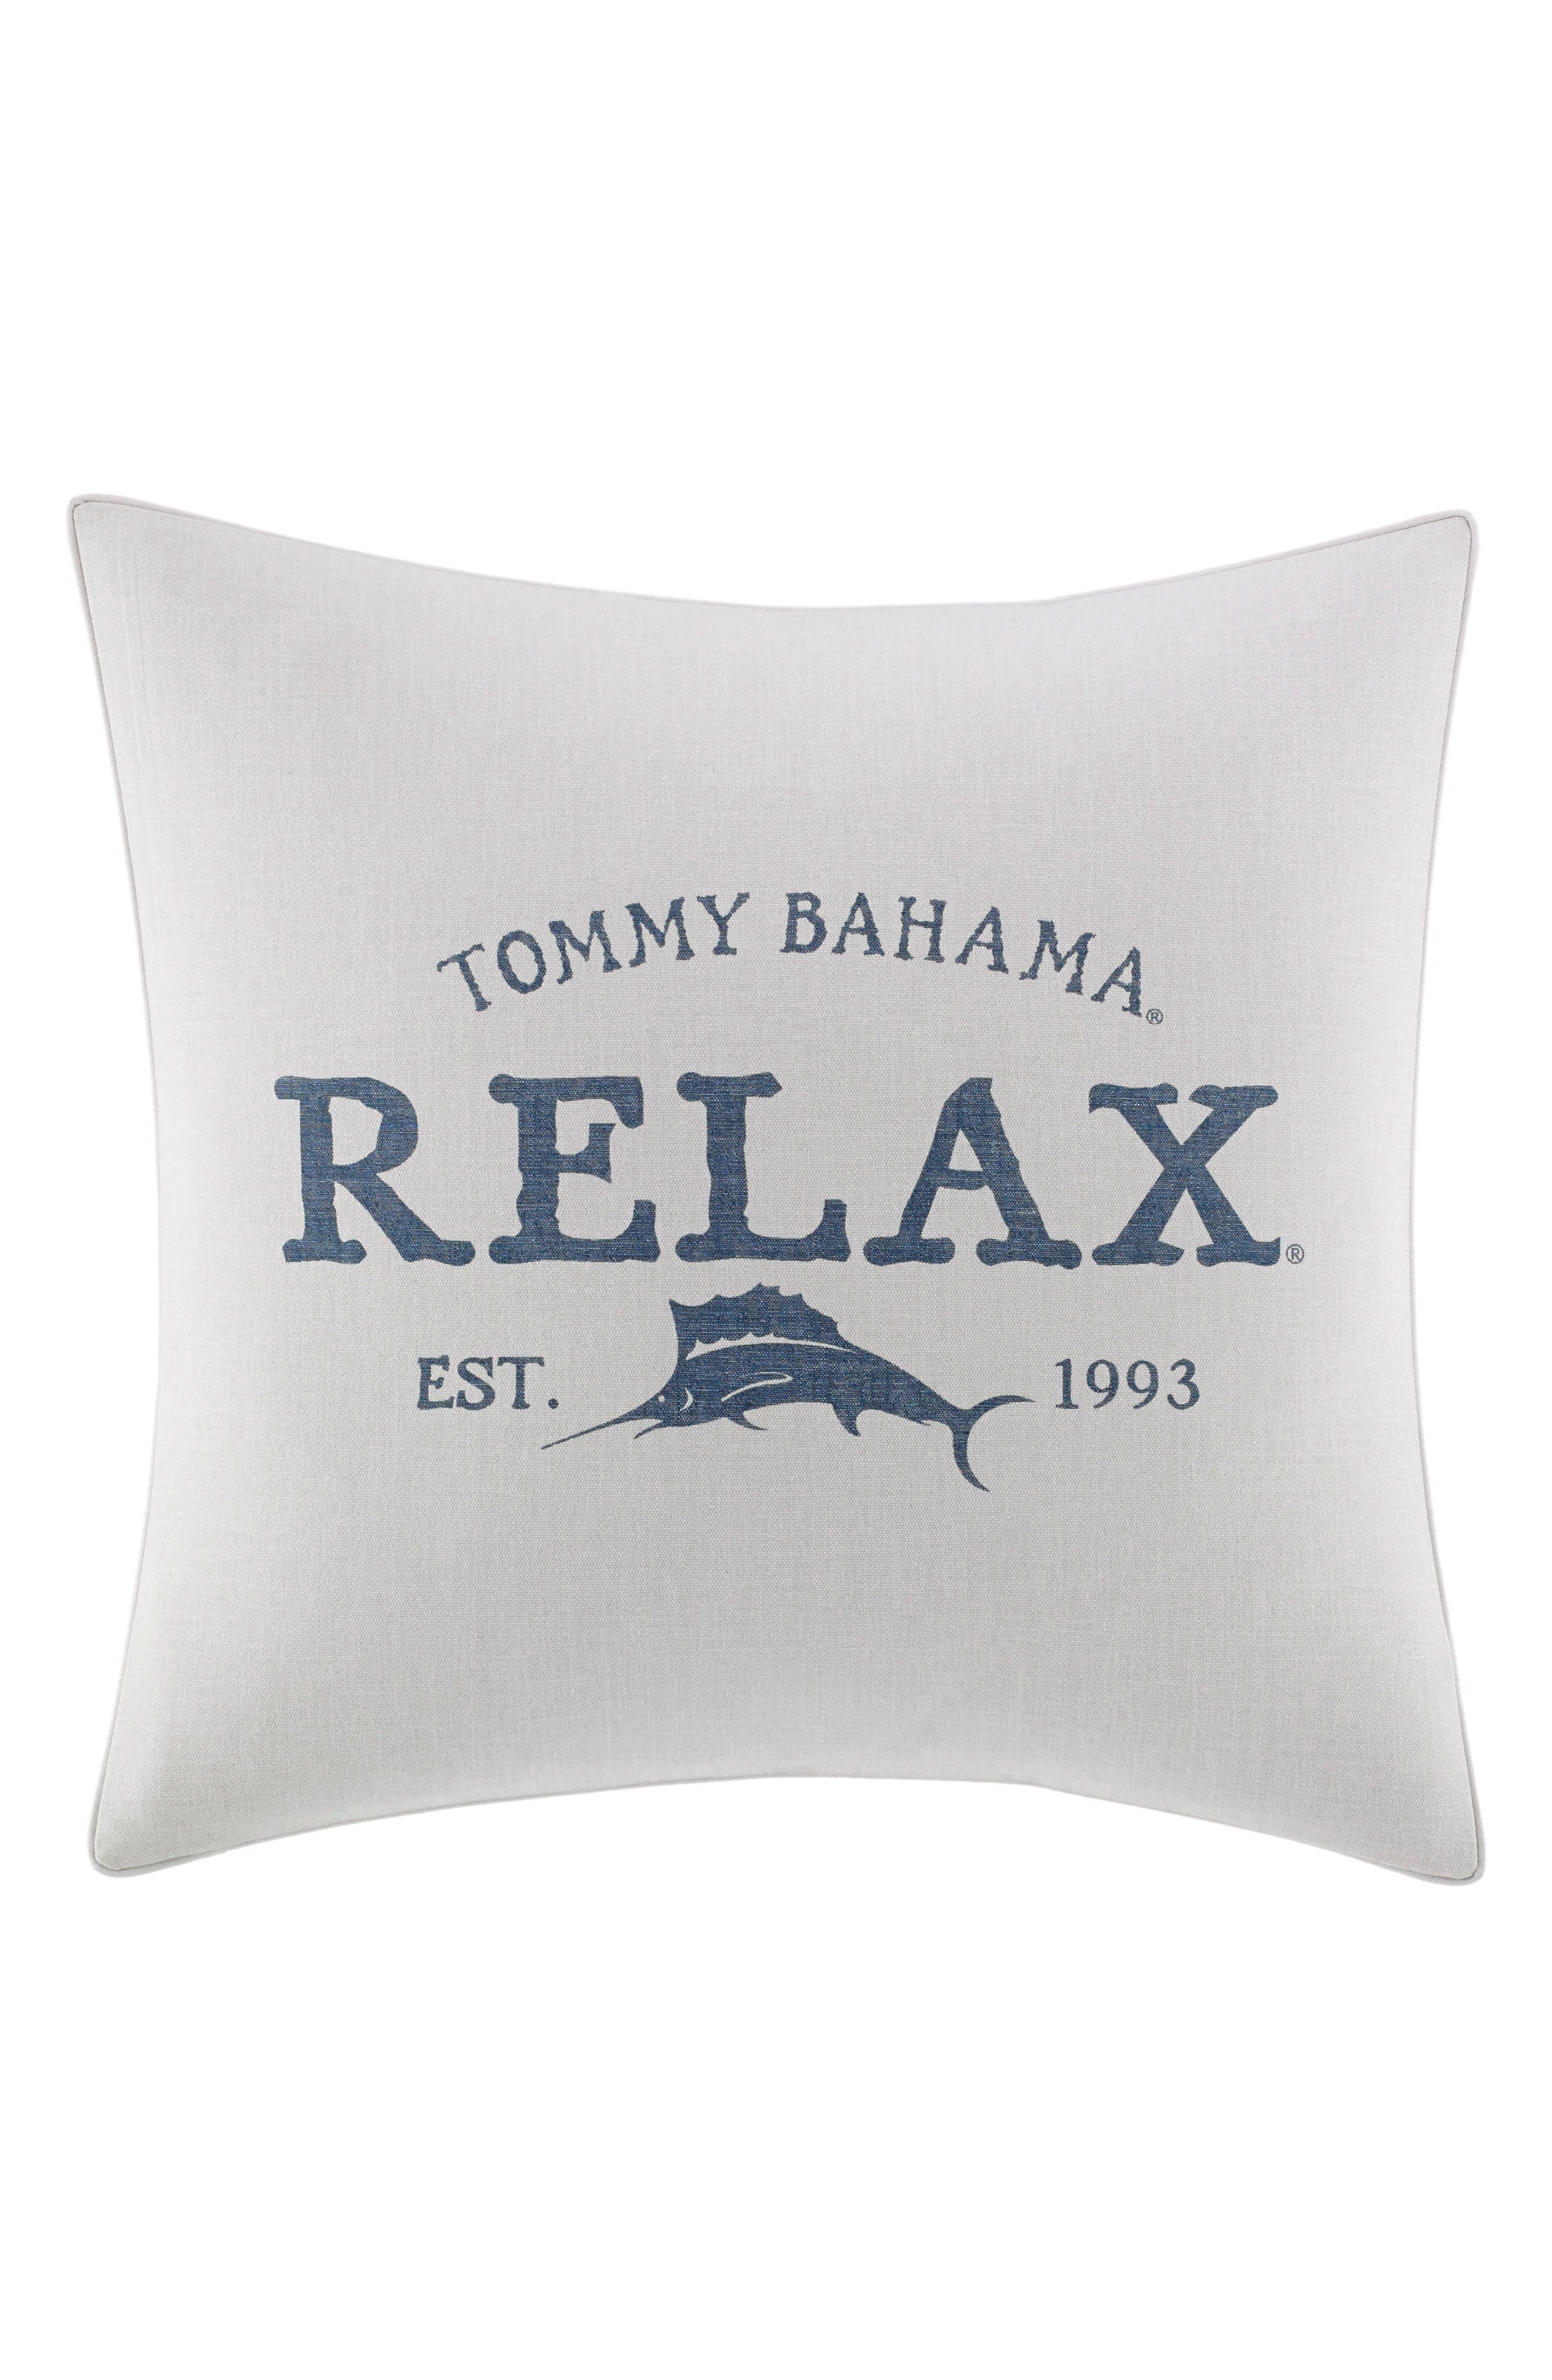 Relax Accent Pillow,                             Main thumbnail 1, color,                             300